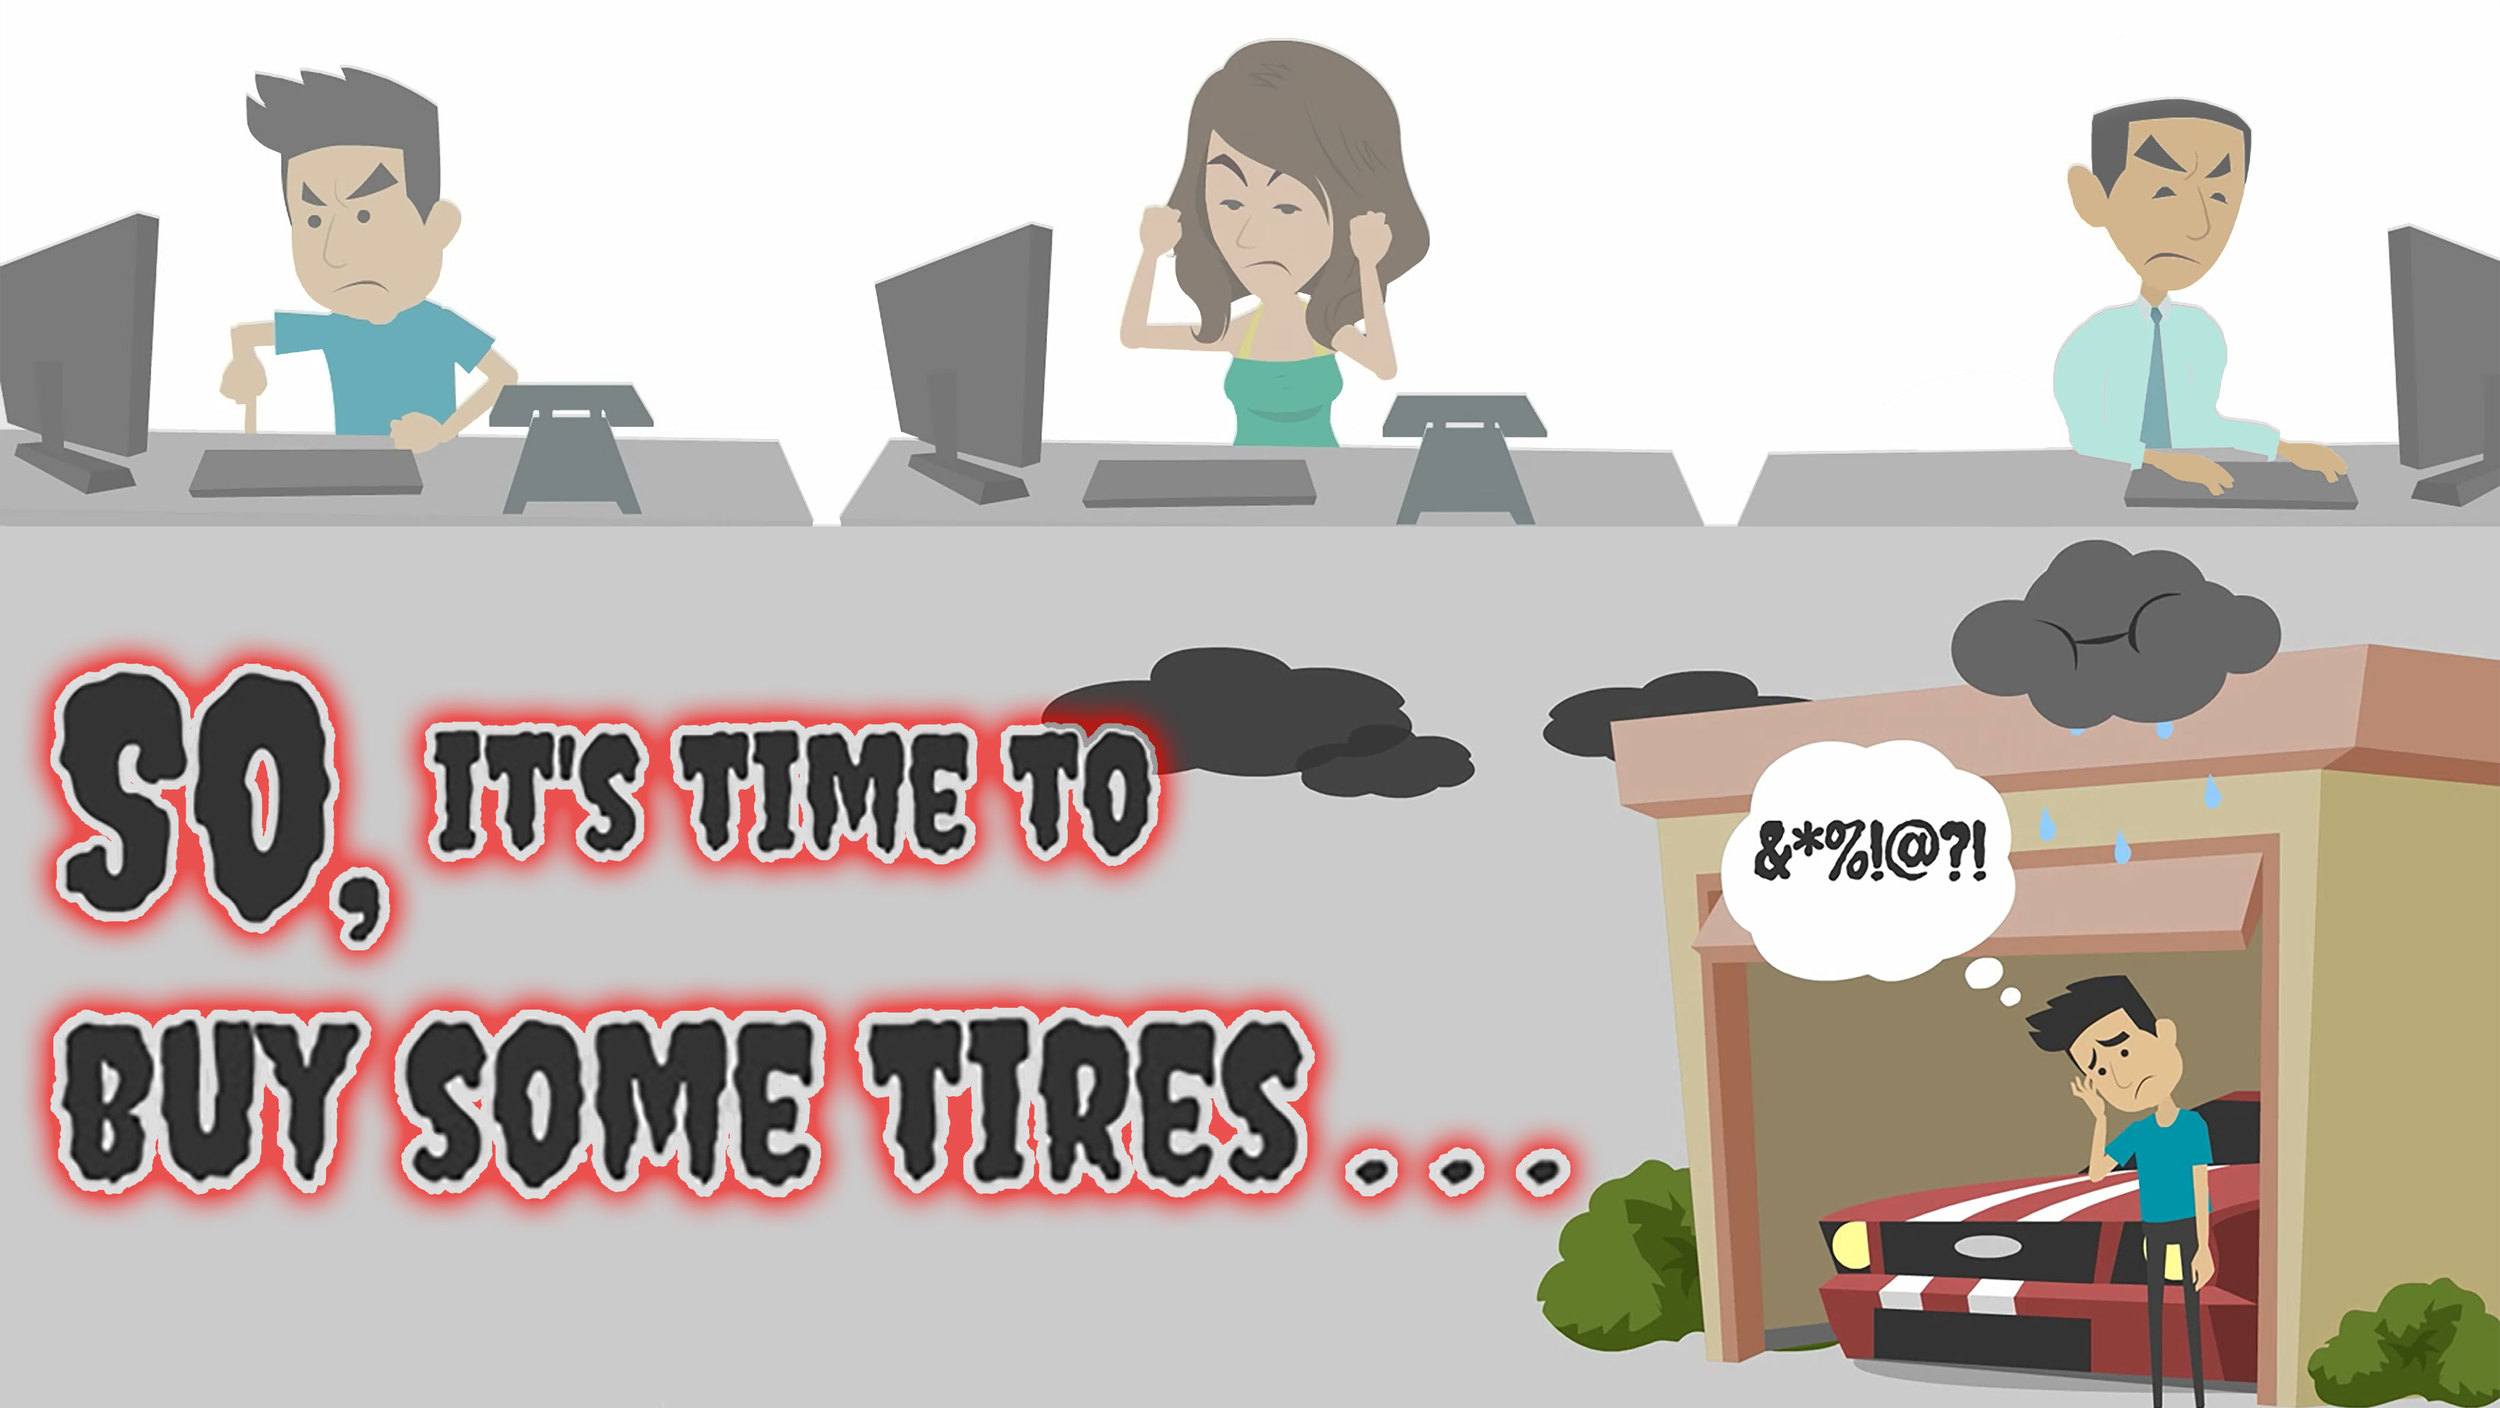 The-Reality-Of-Buying-Tires-V3.1.jpg